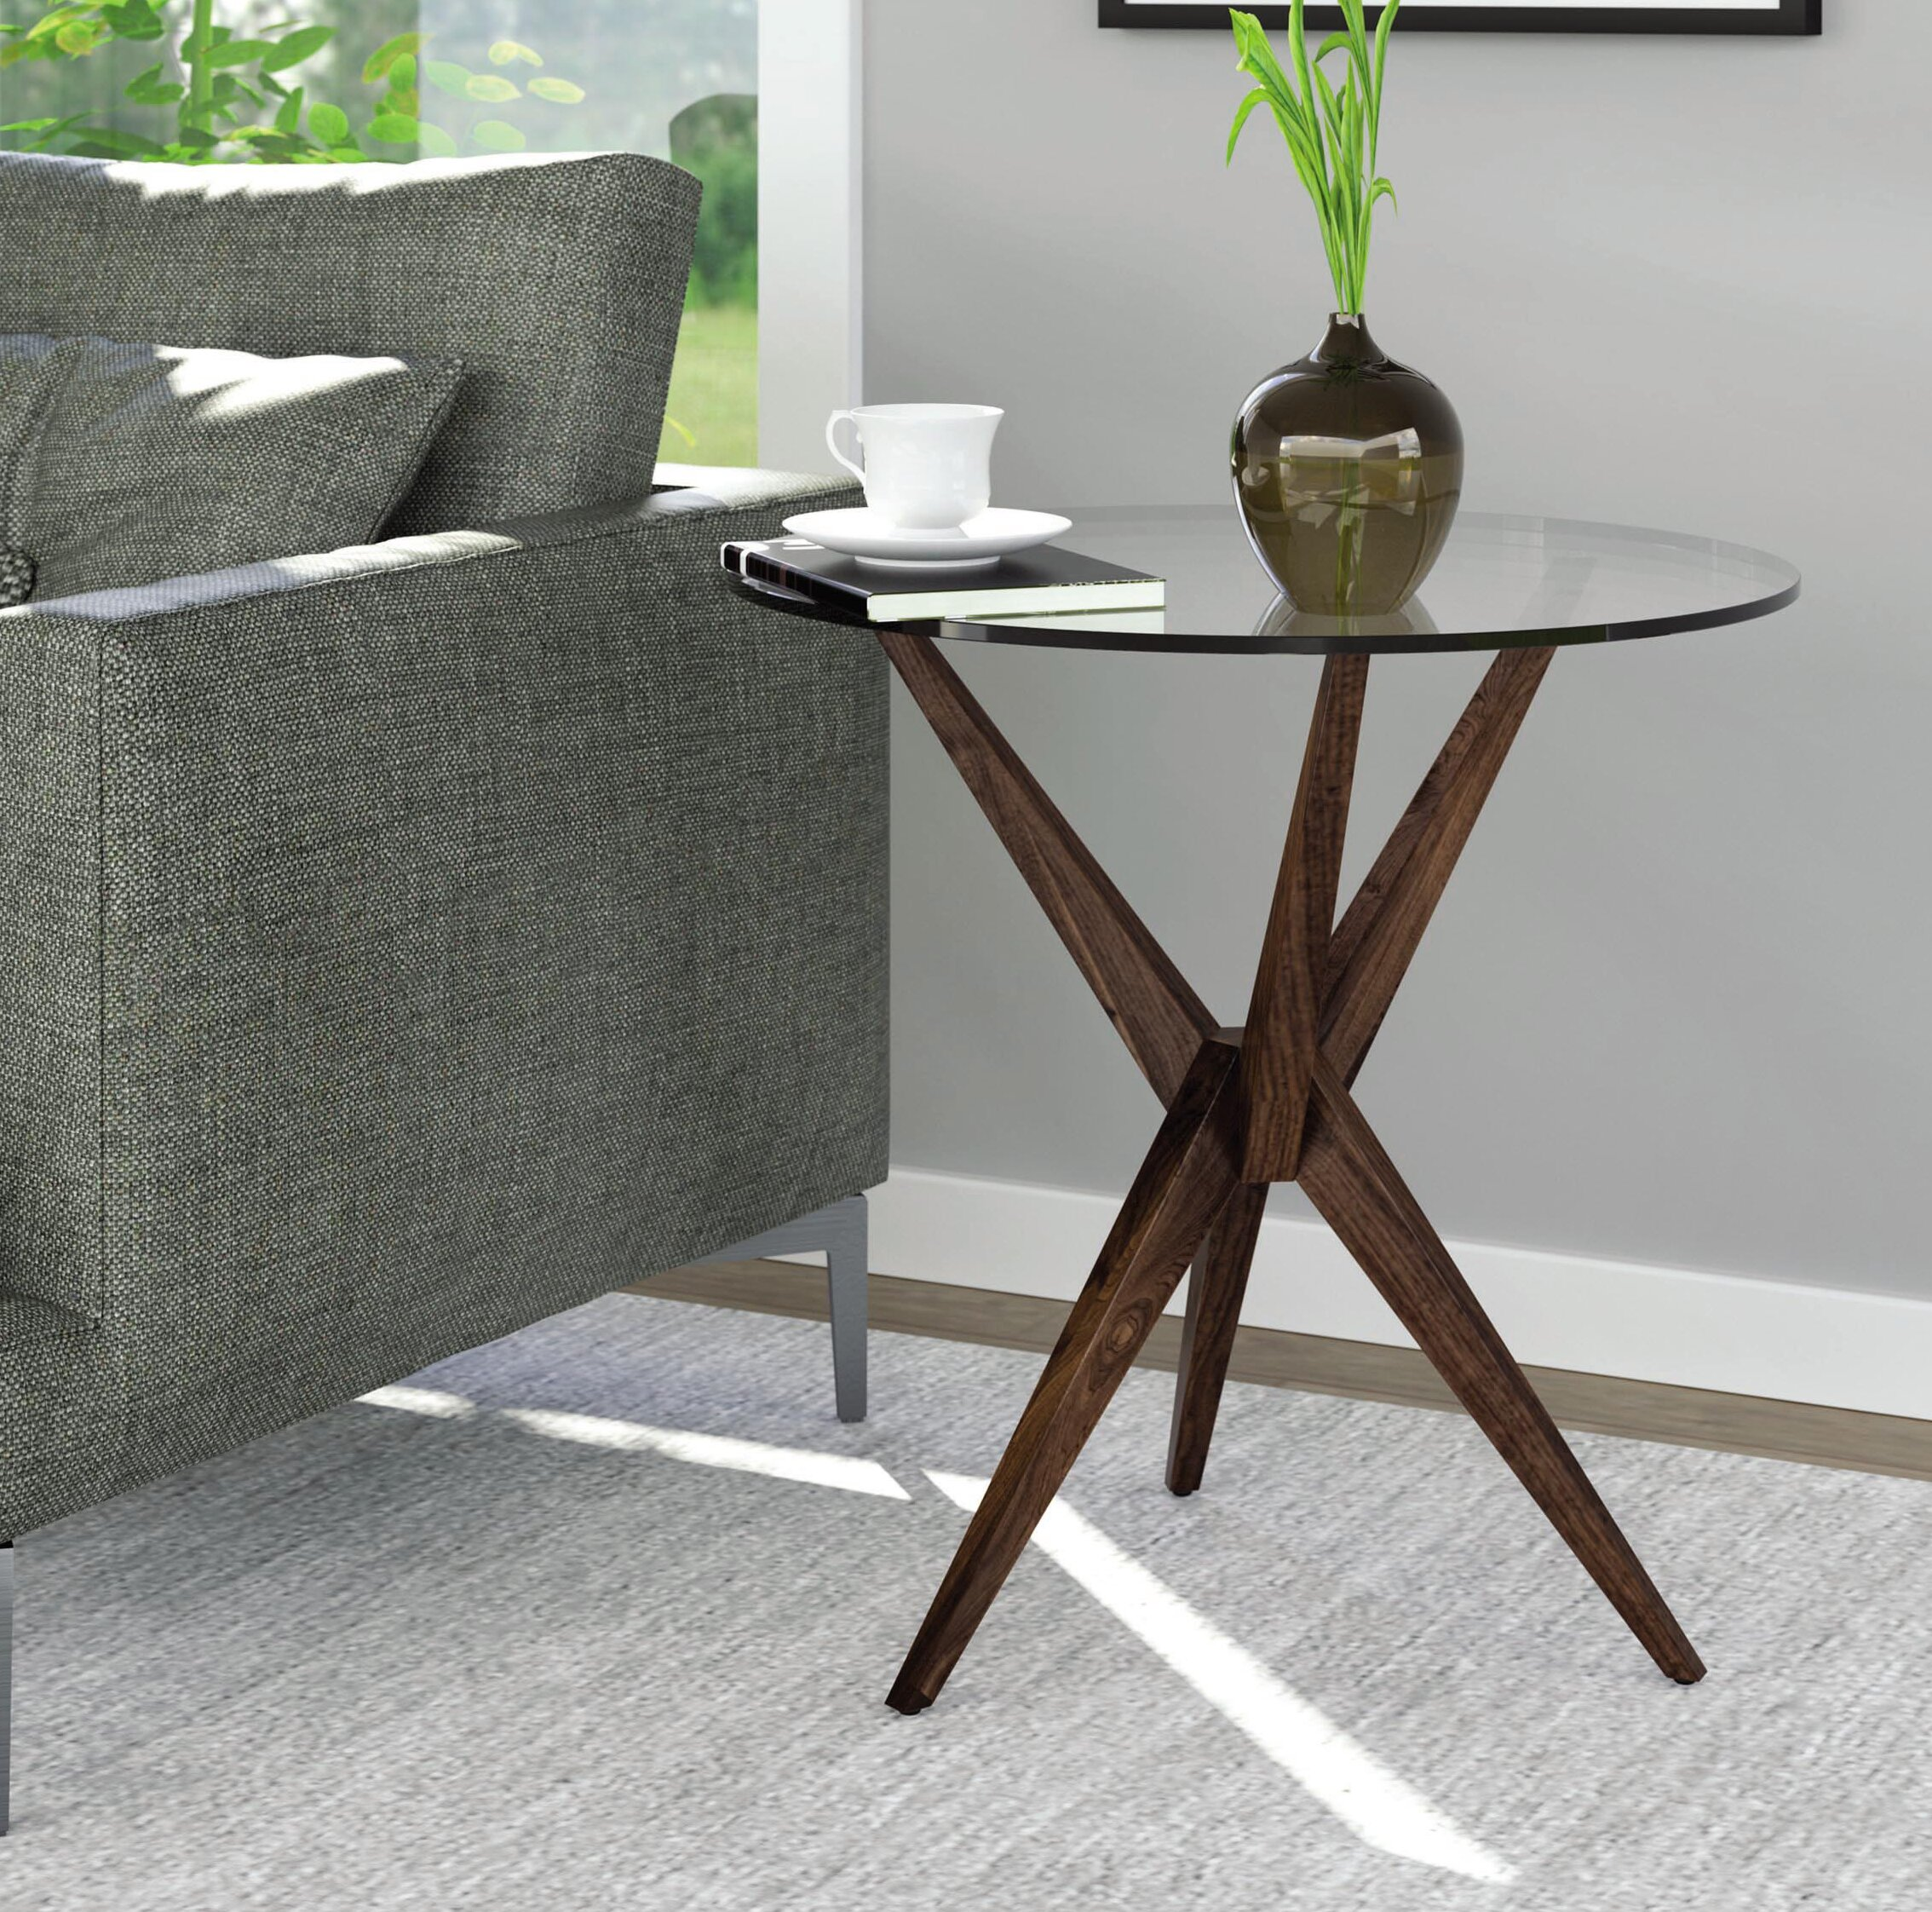 Copeland furniture converge statements end table wayfair